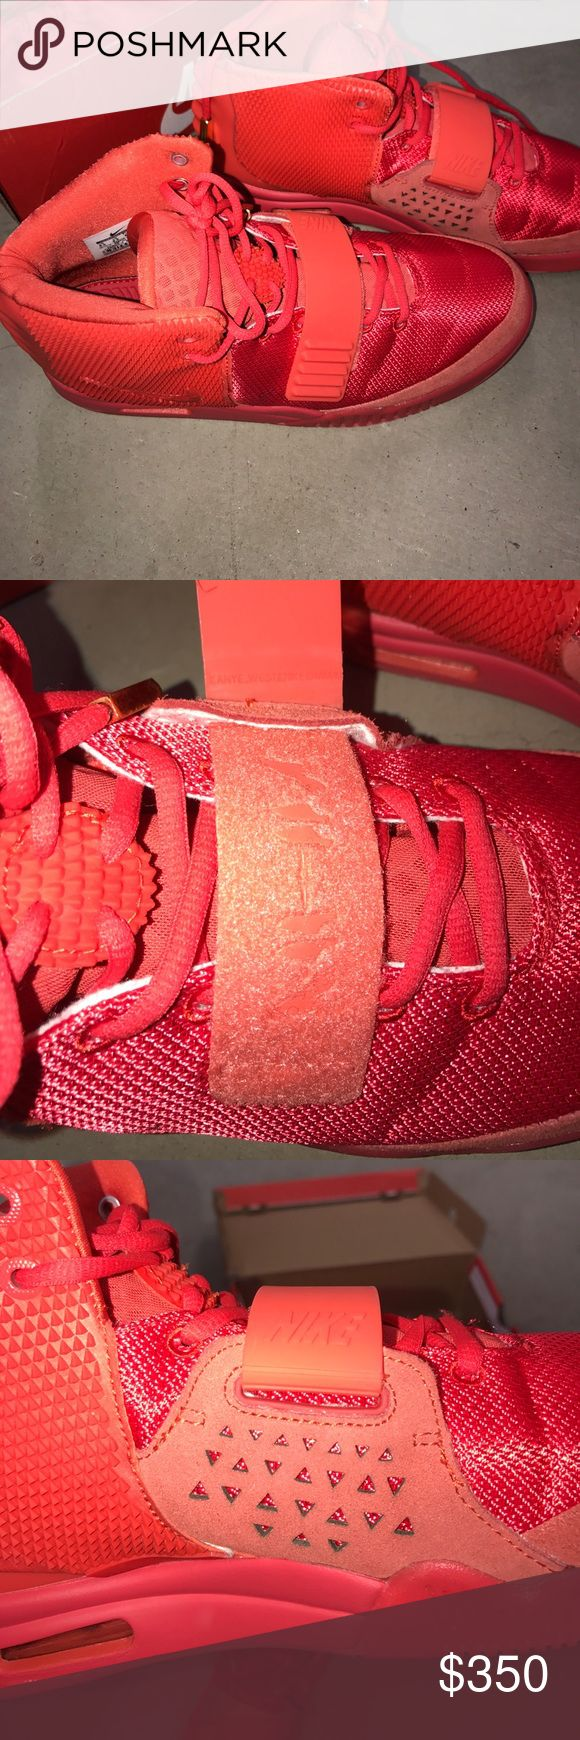 Nike air yeezy 2 red october size 9.5 Not authentic shoe, top quality, includes box and dust bag. Size 9.5. Glow in the dark red sole Nike Shoes Sneakers